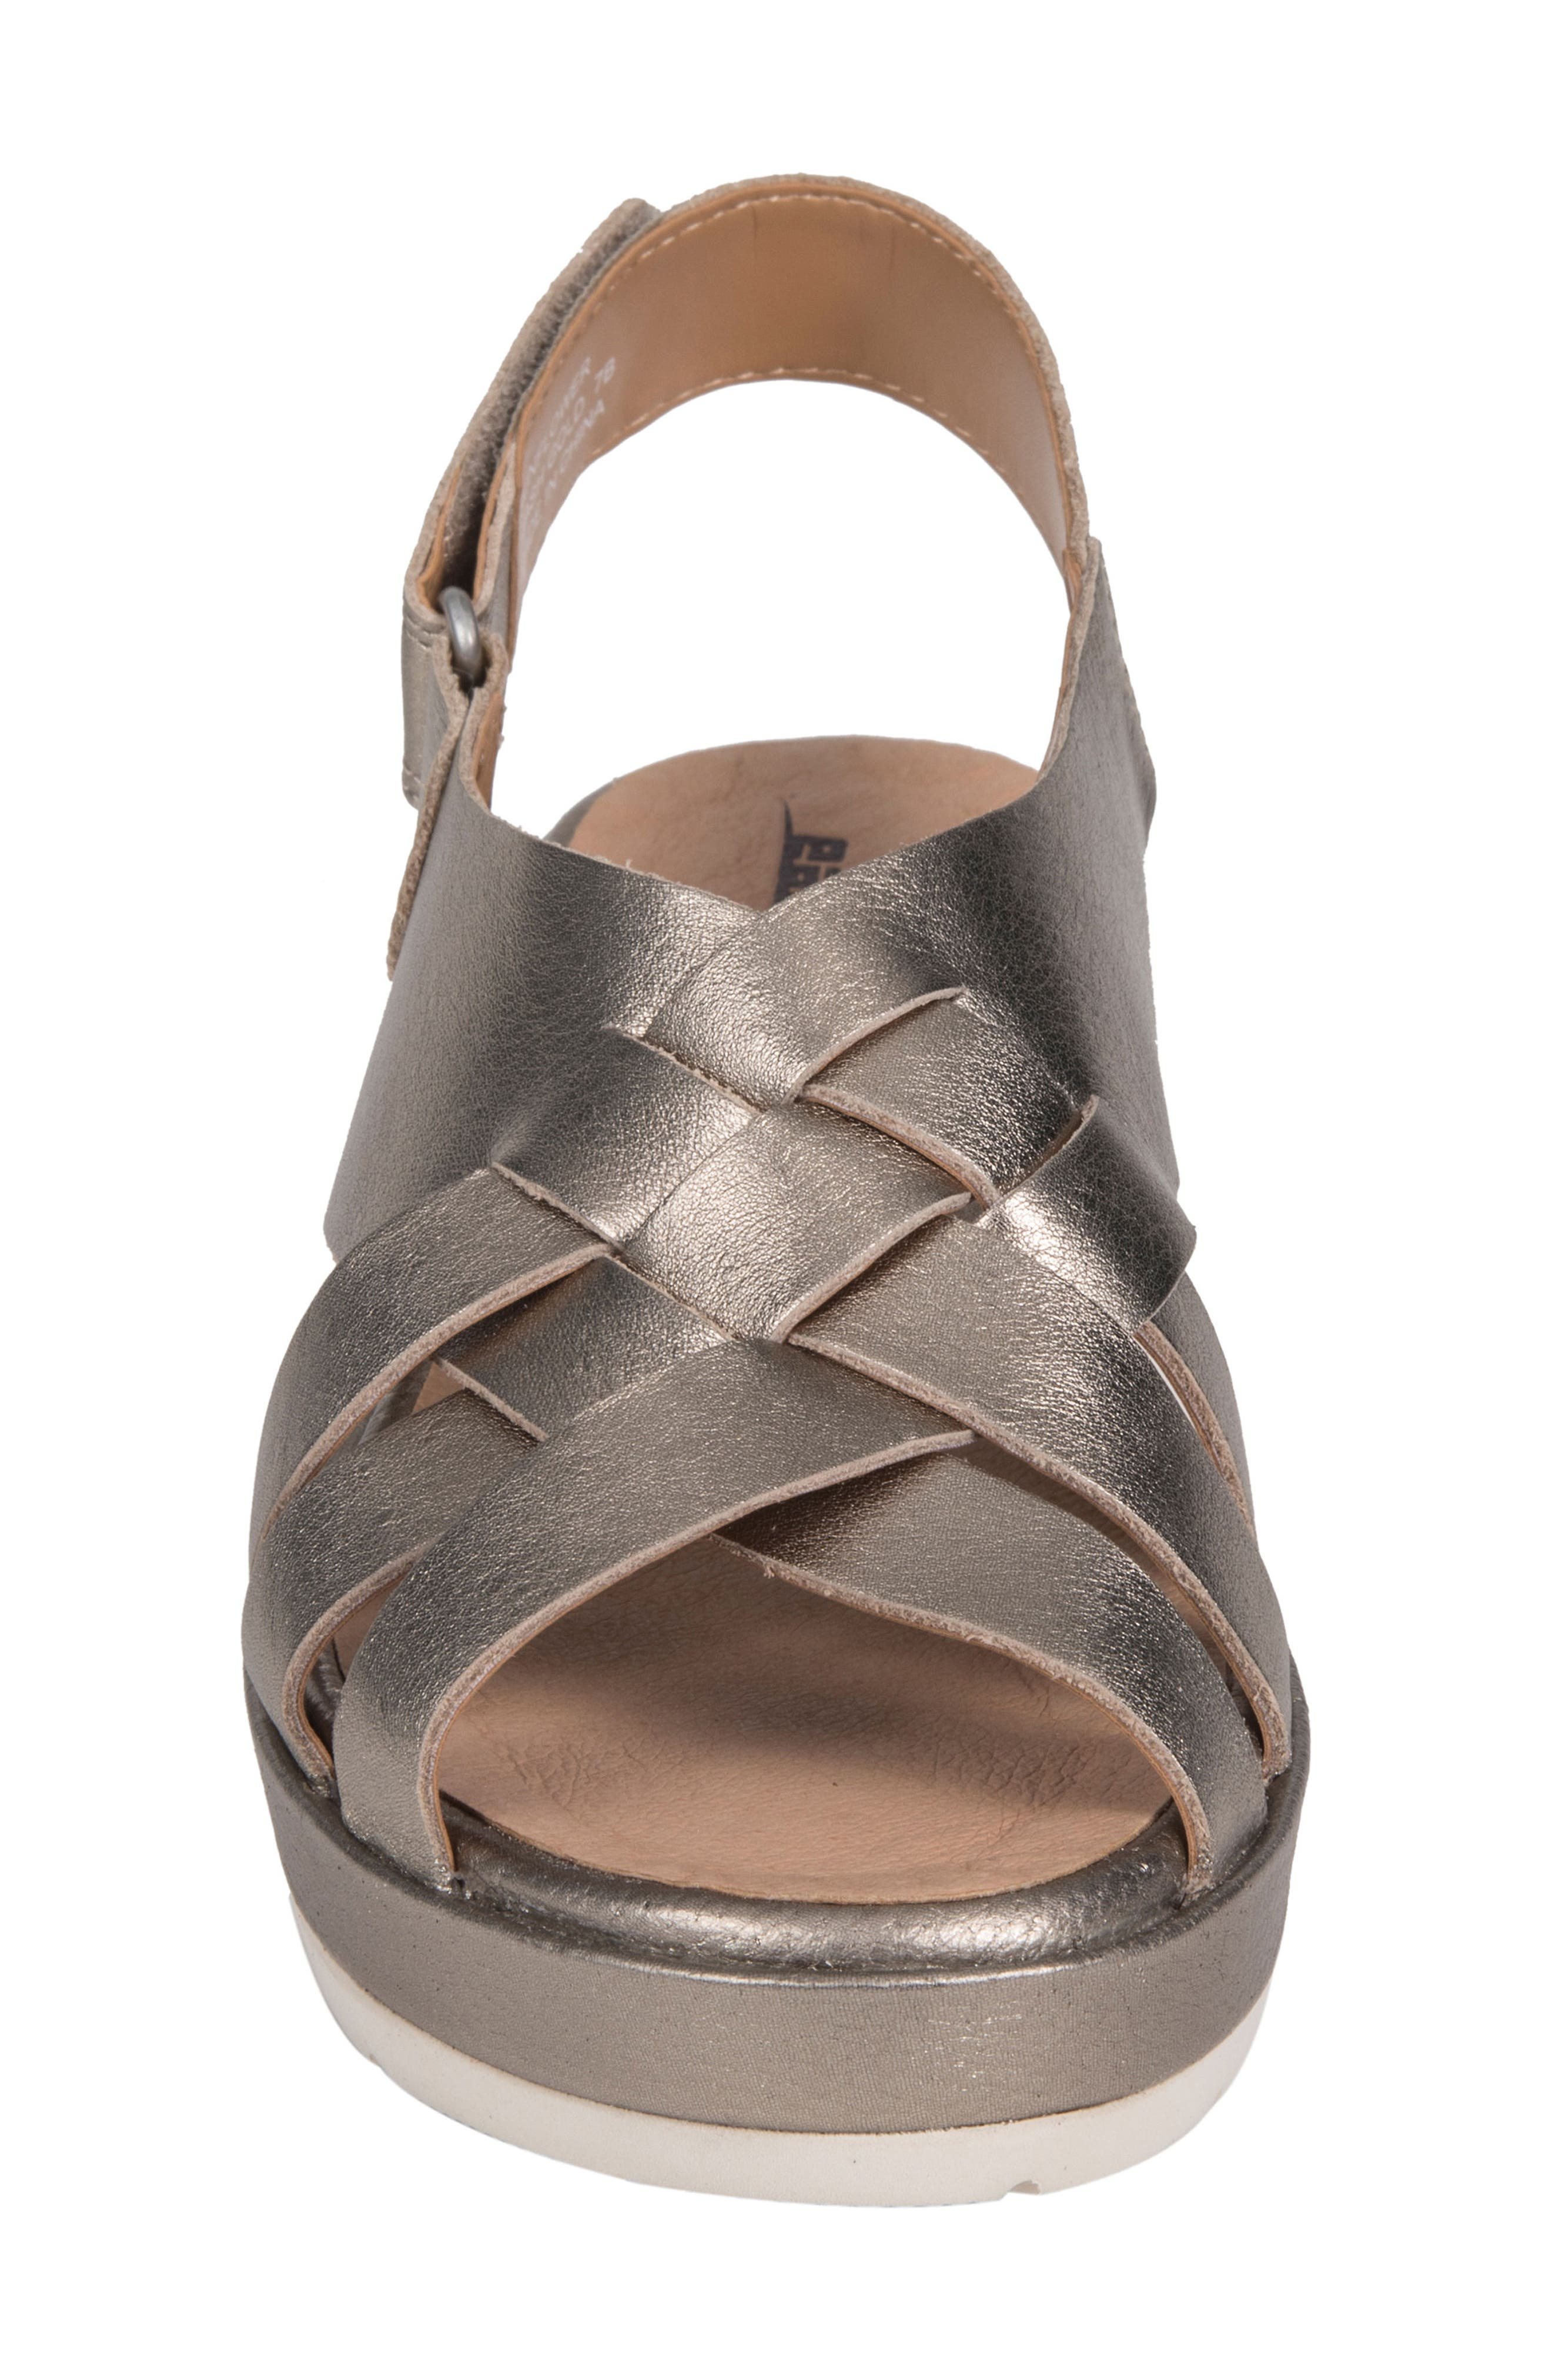 Sunflower Wedge Sandal,                             Alternate thumbnail 4, color,                             WASHED GOLD METALLIC LEATHER